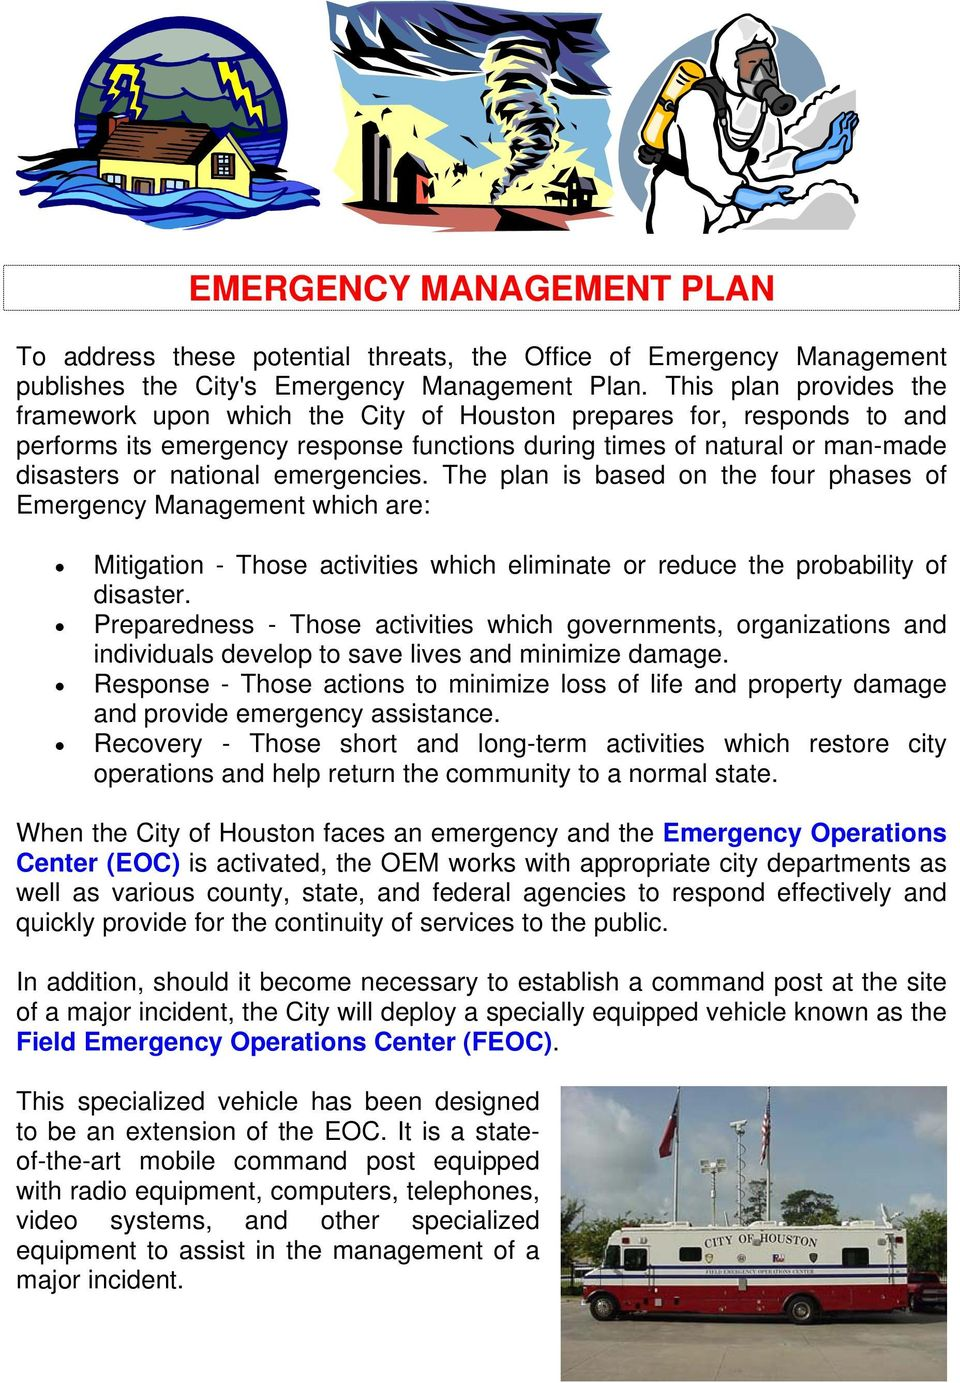 emergencies. The plan is based on the four phases of Emergency Management which are: Mitigation - Those activities which eliminate or reduce the probability of disaster.